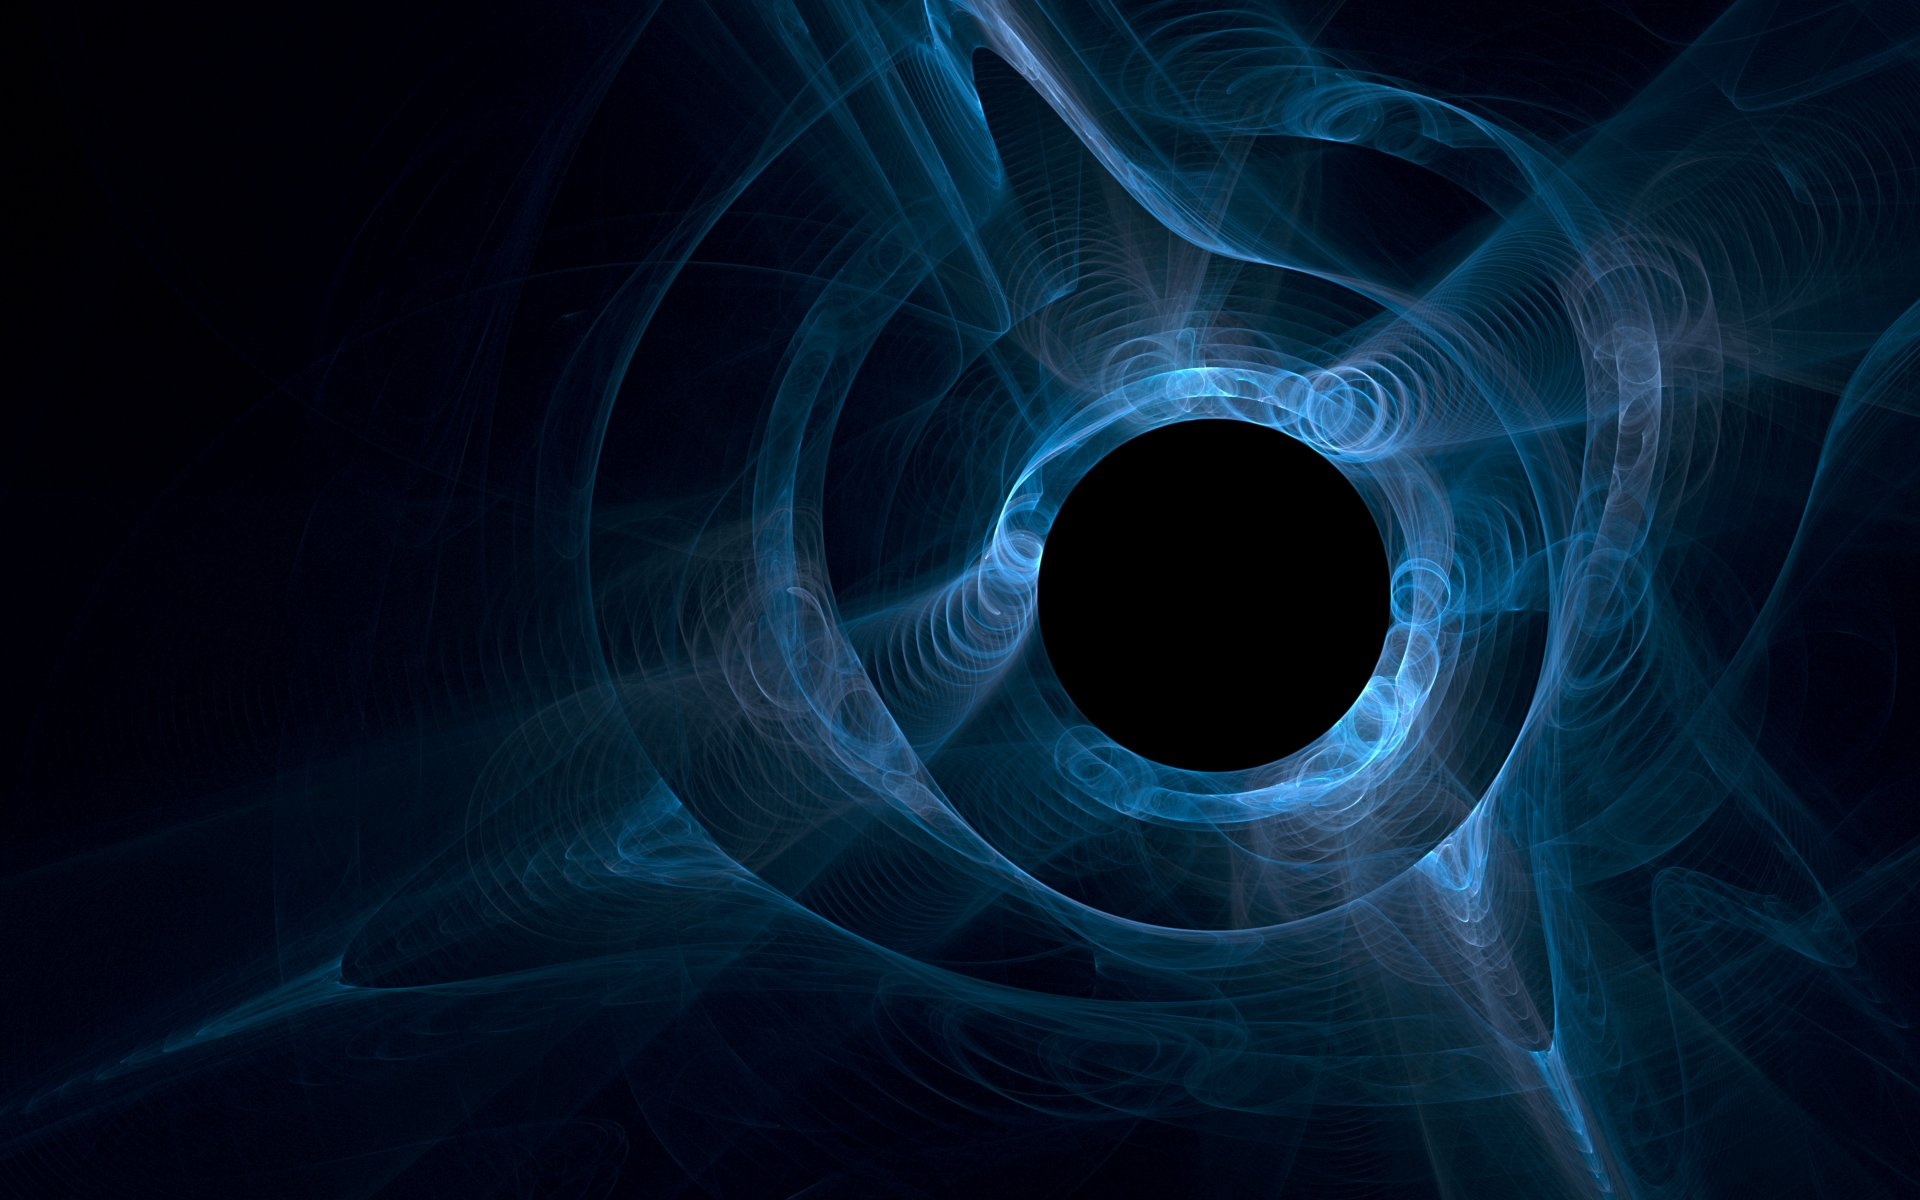 Black Hole Background - WallpaperSafari